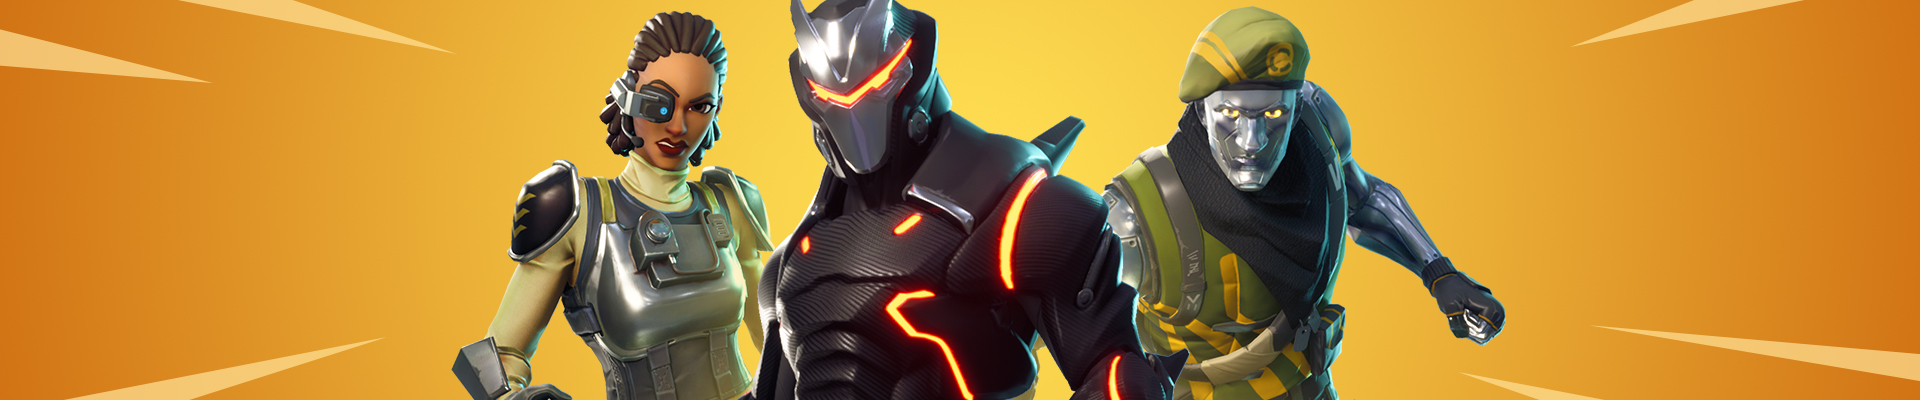 Fortnite World Cup: How to qualify